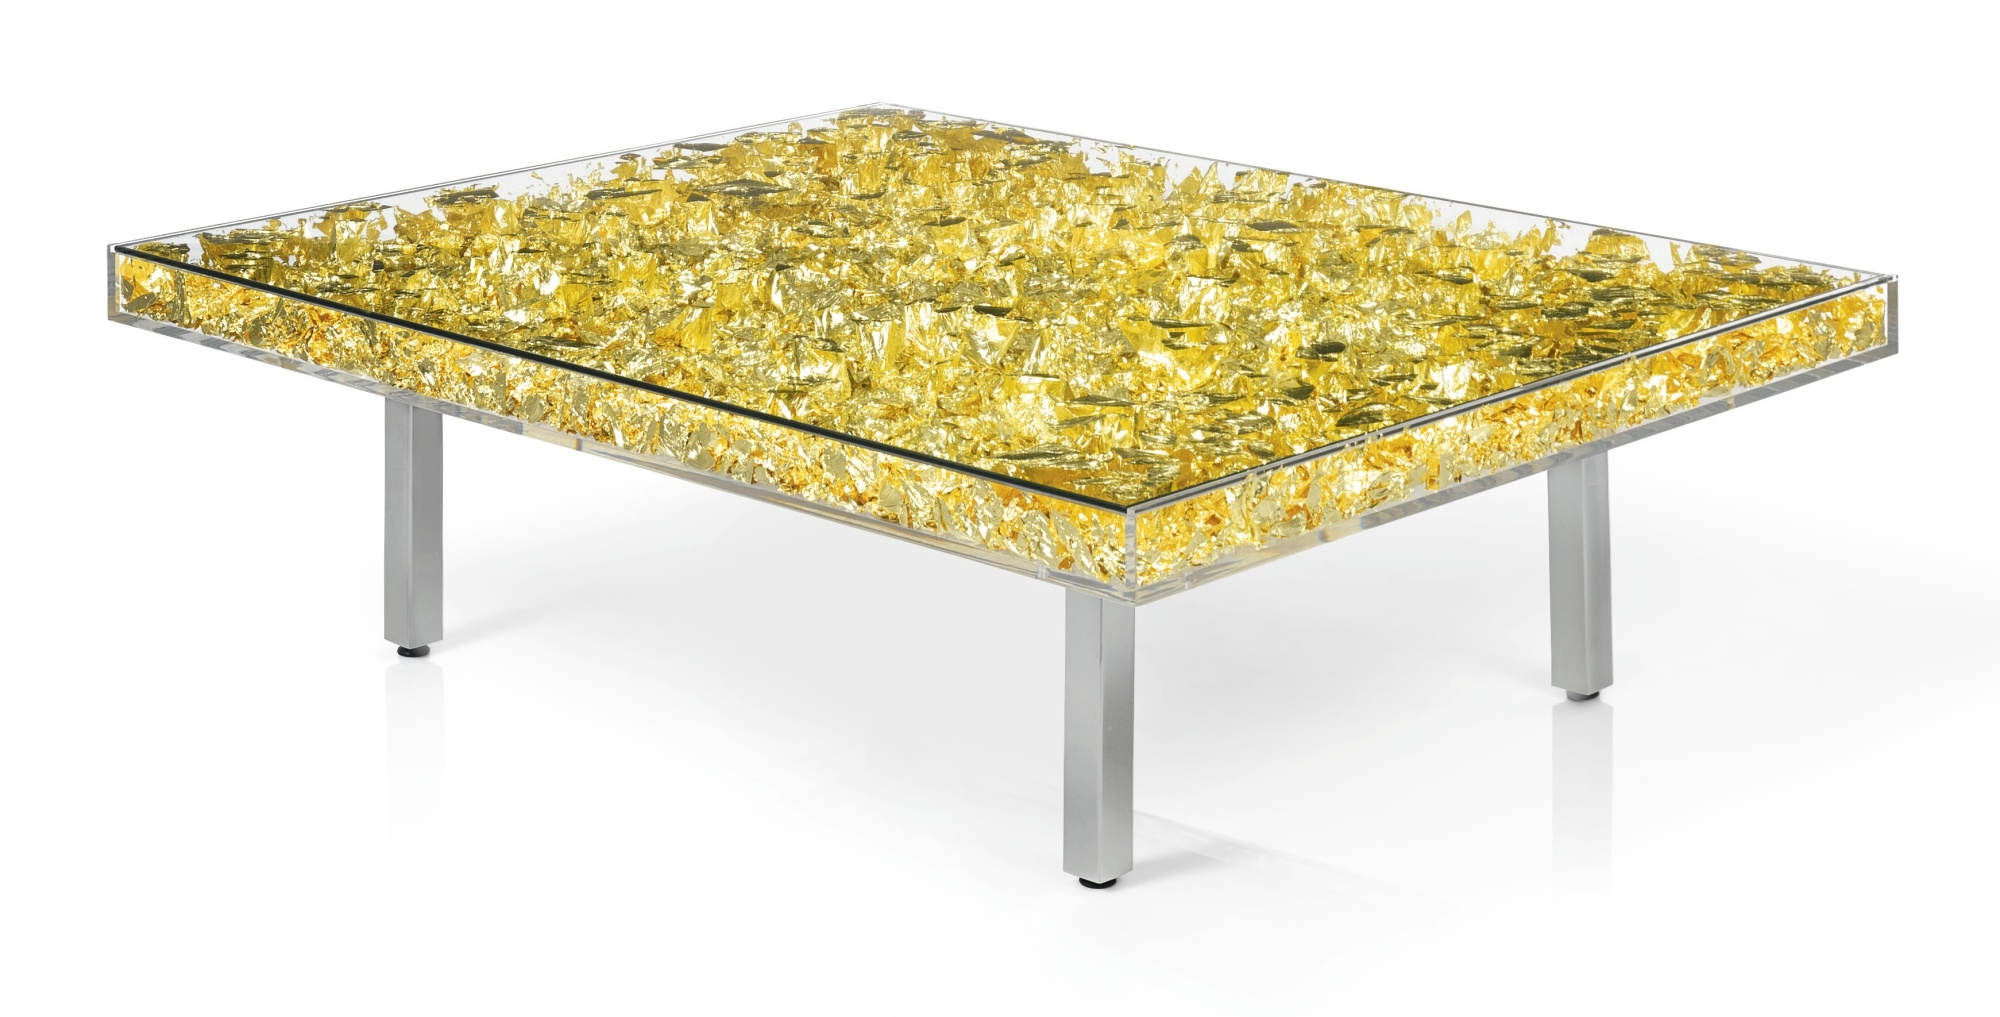 Yves klein table d 39 or 1963 22 karat gold leaf for Table yves klein